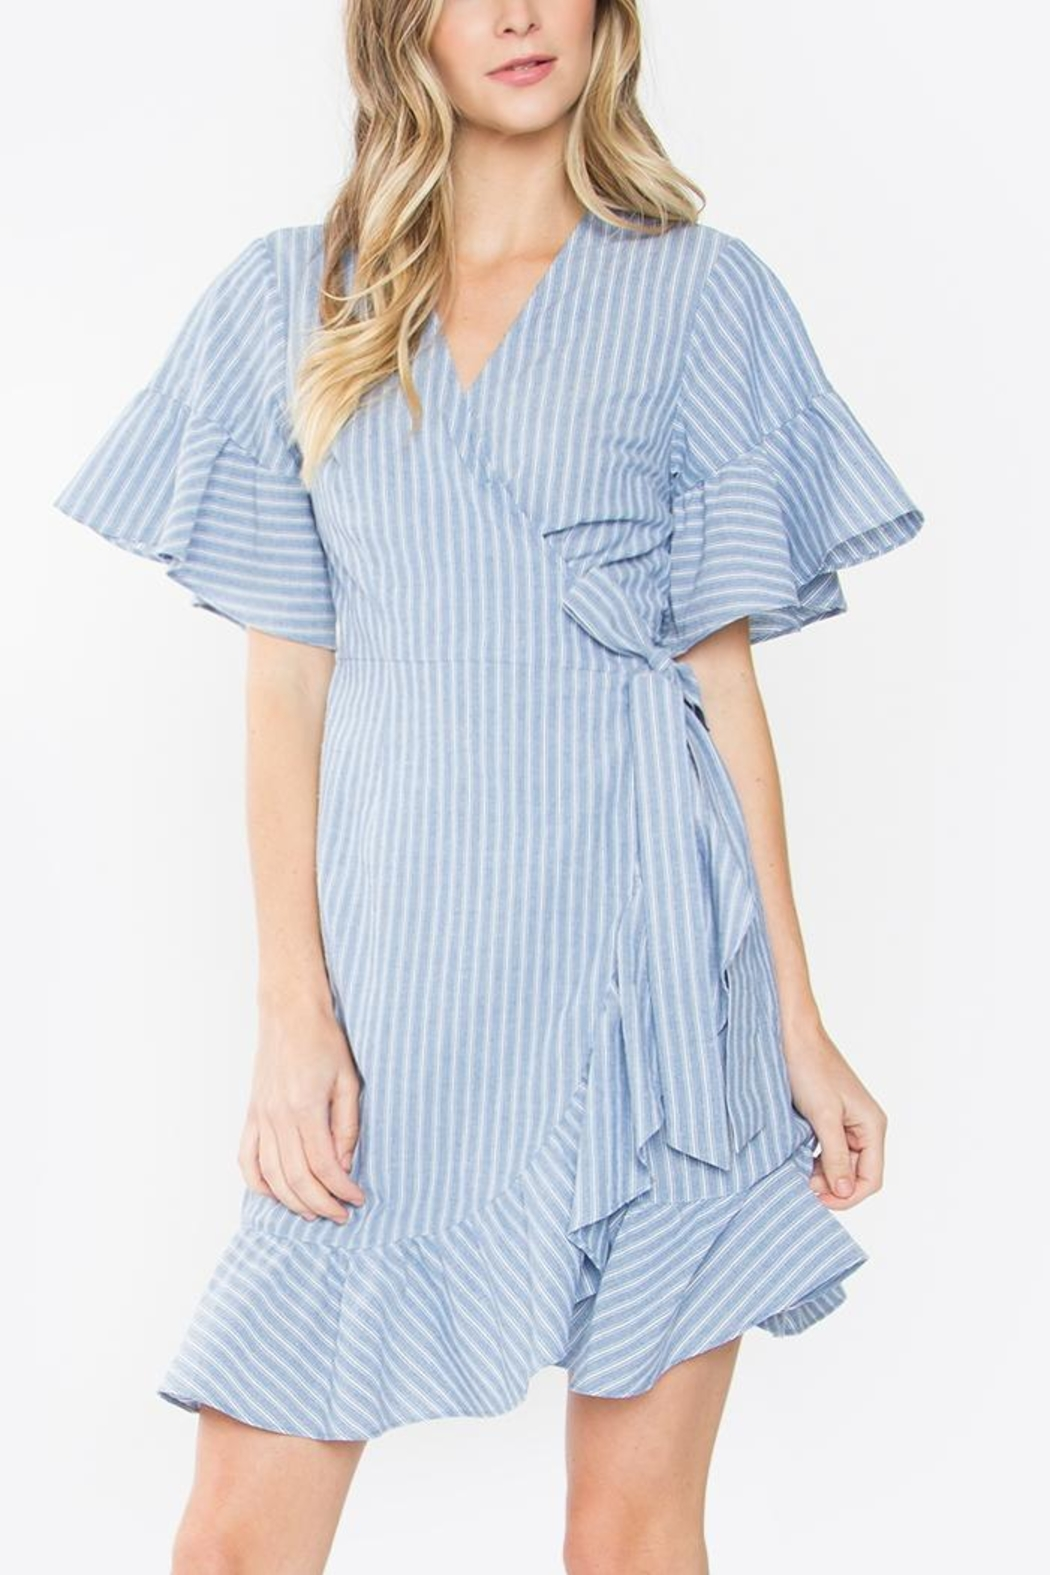 Sugarlips Striped Ruffle Dress - Main Image